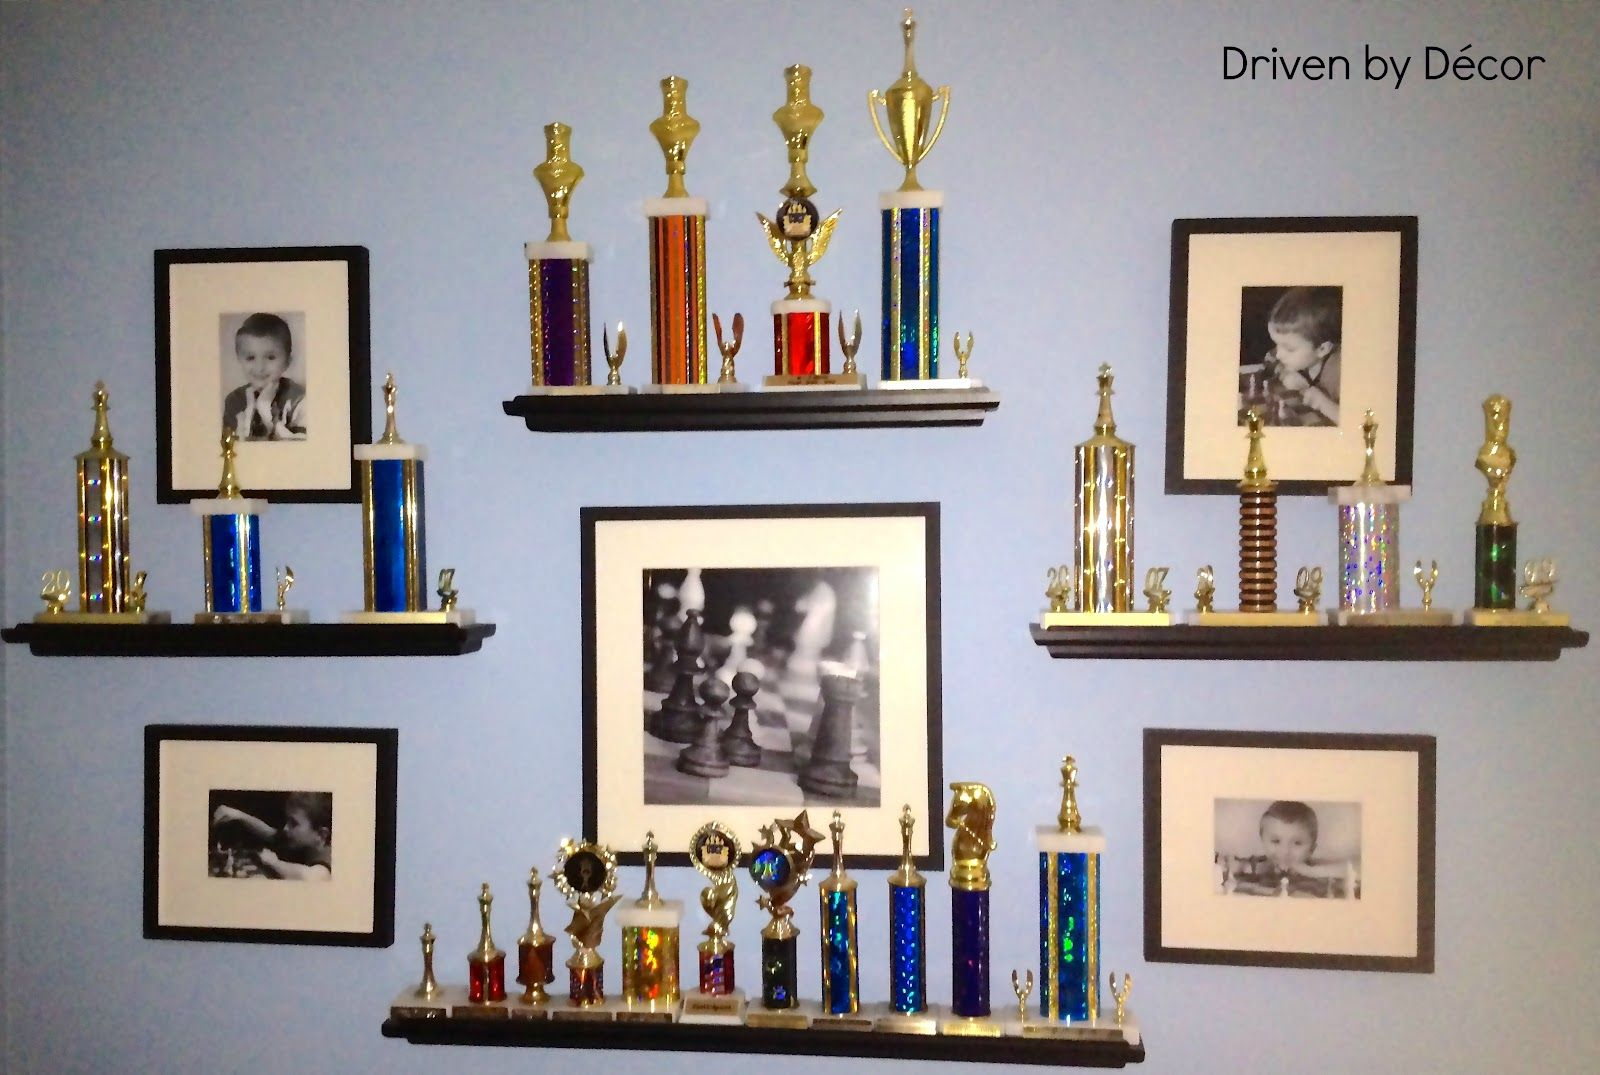 Bon This Is A Nice Display Of Trophies From: Driven By Décor: Trophy And Medal  Awards Display